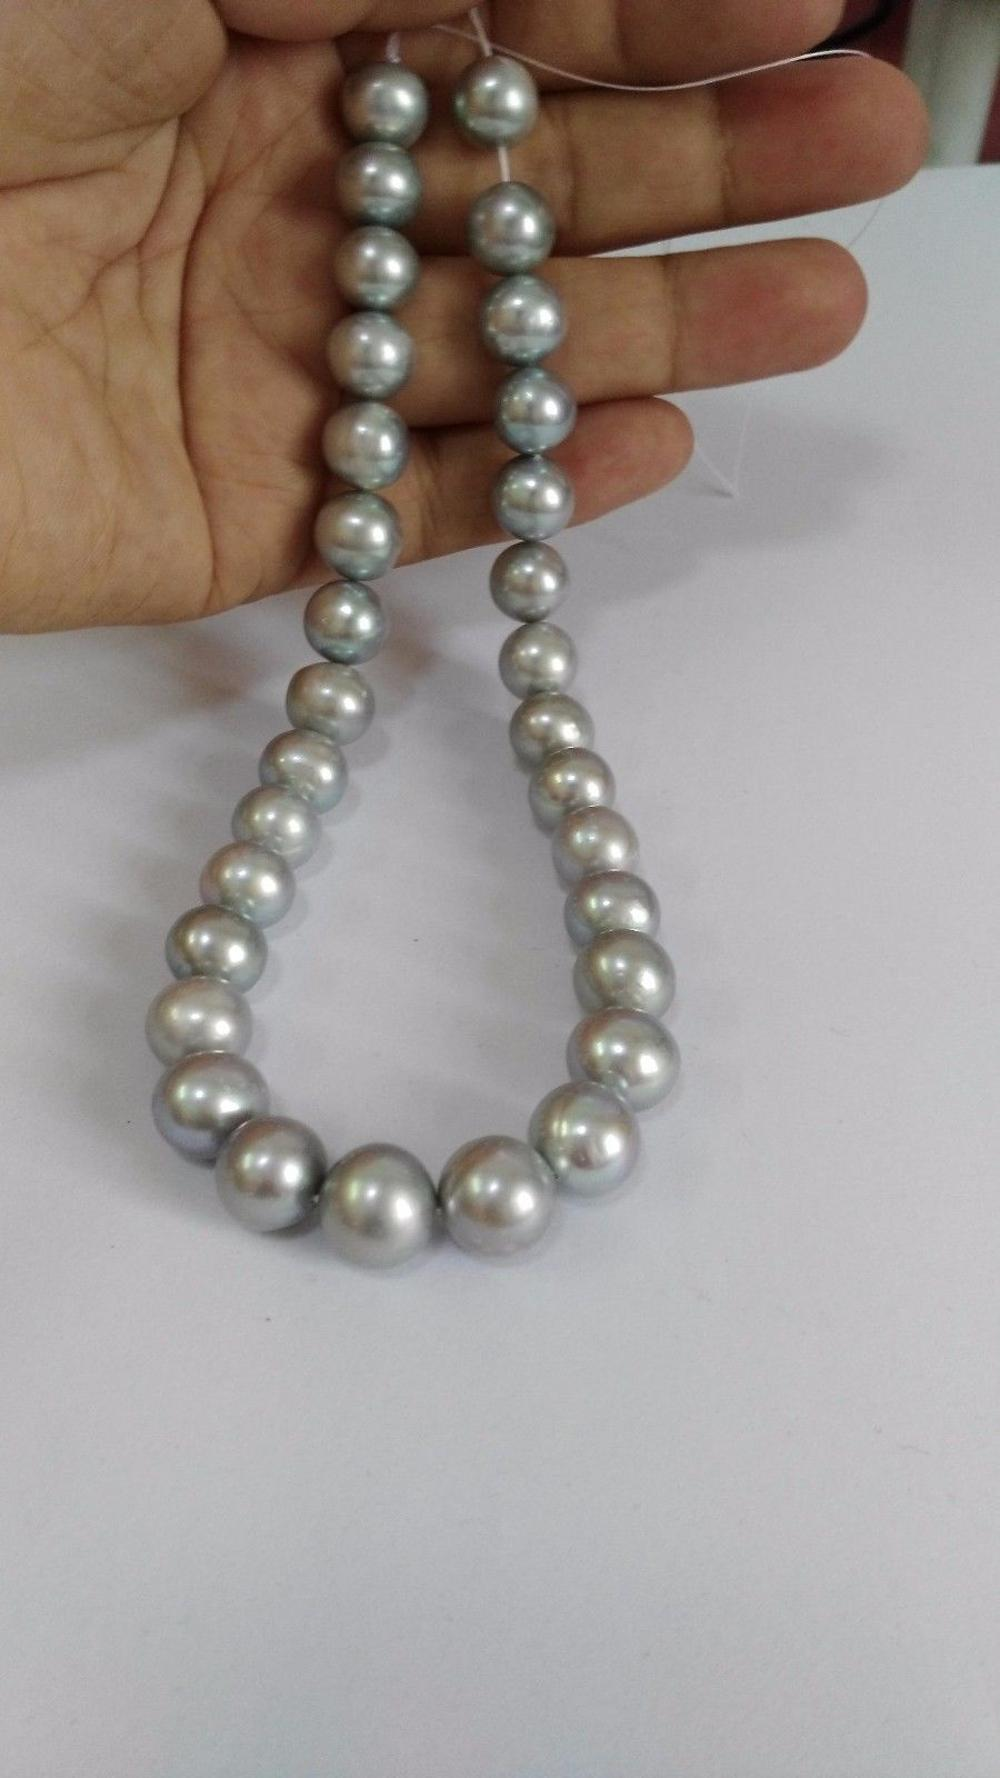 elegant 9-10mm south sea round silver grey pearl necklace 18inch 925 silver gogerous perfect round aaa9 10mm south sea silver grey pearl necklace 18inch selling jewerly free shipping